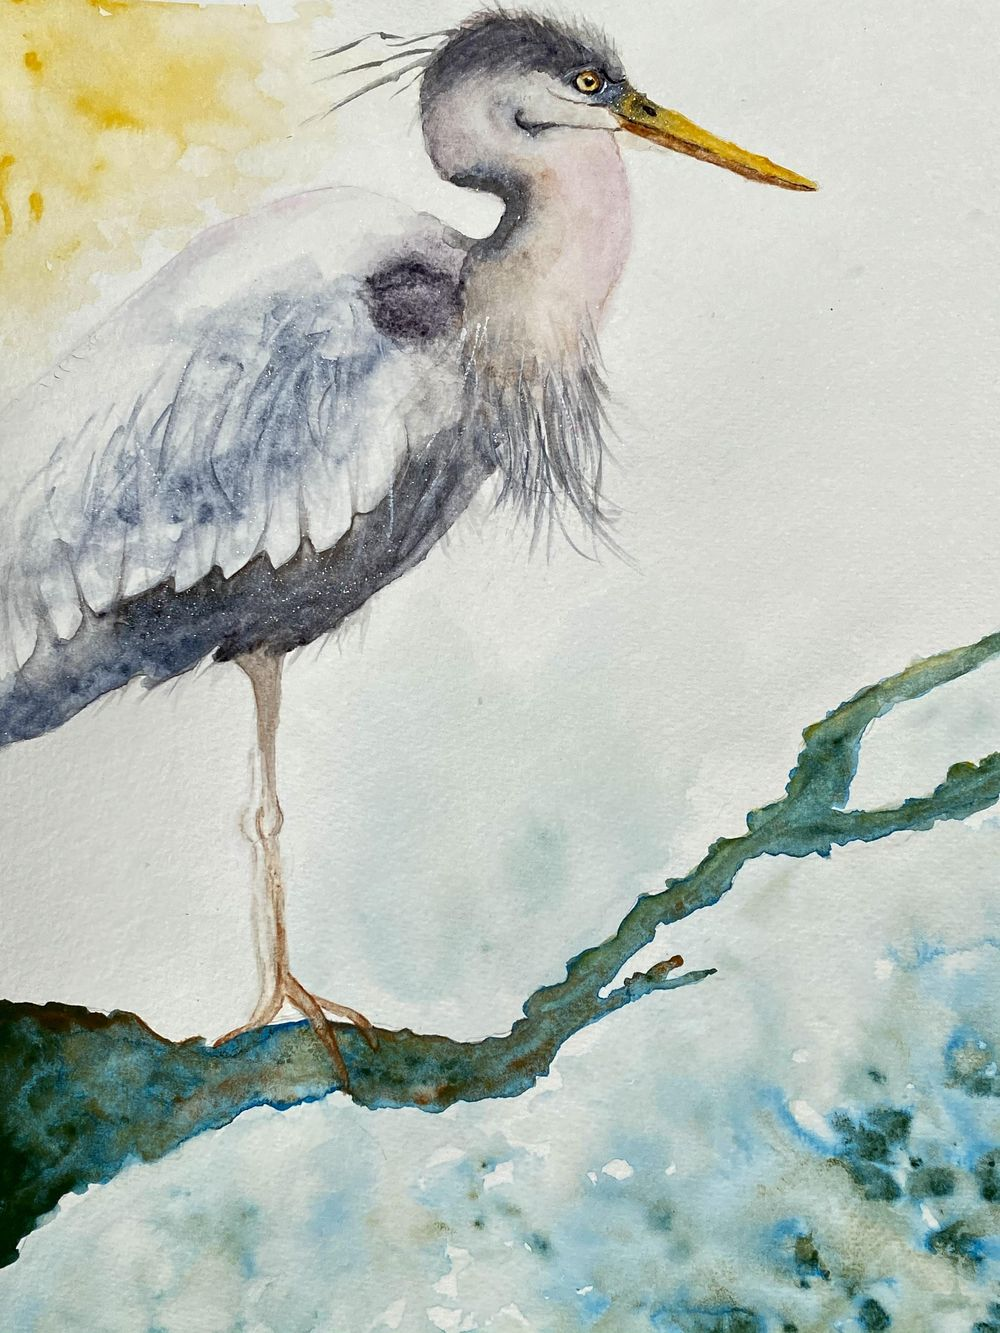 Heron - image 1 - student project